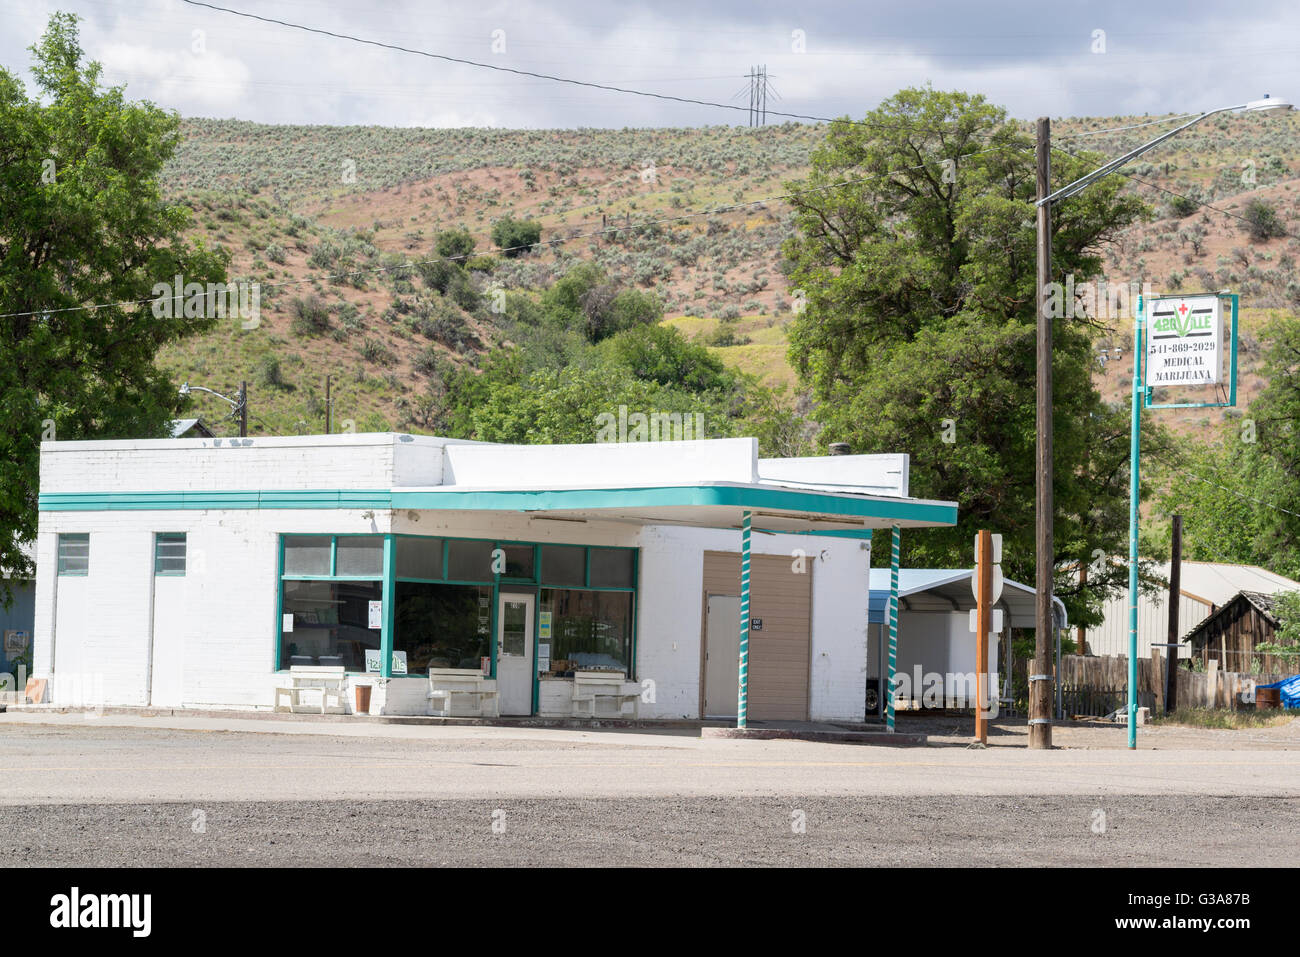 Medical marijuana dispensary in the small town of Huntington, Oregon. Stock Photo